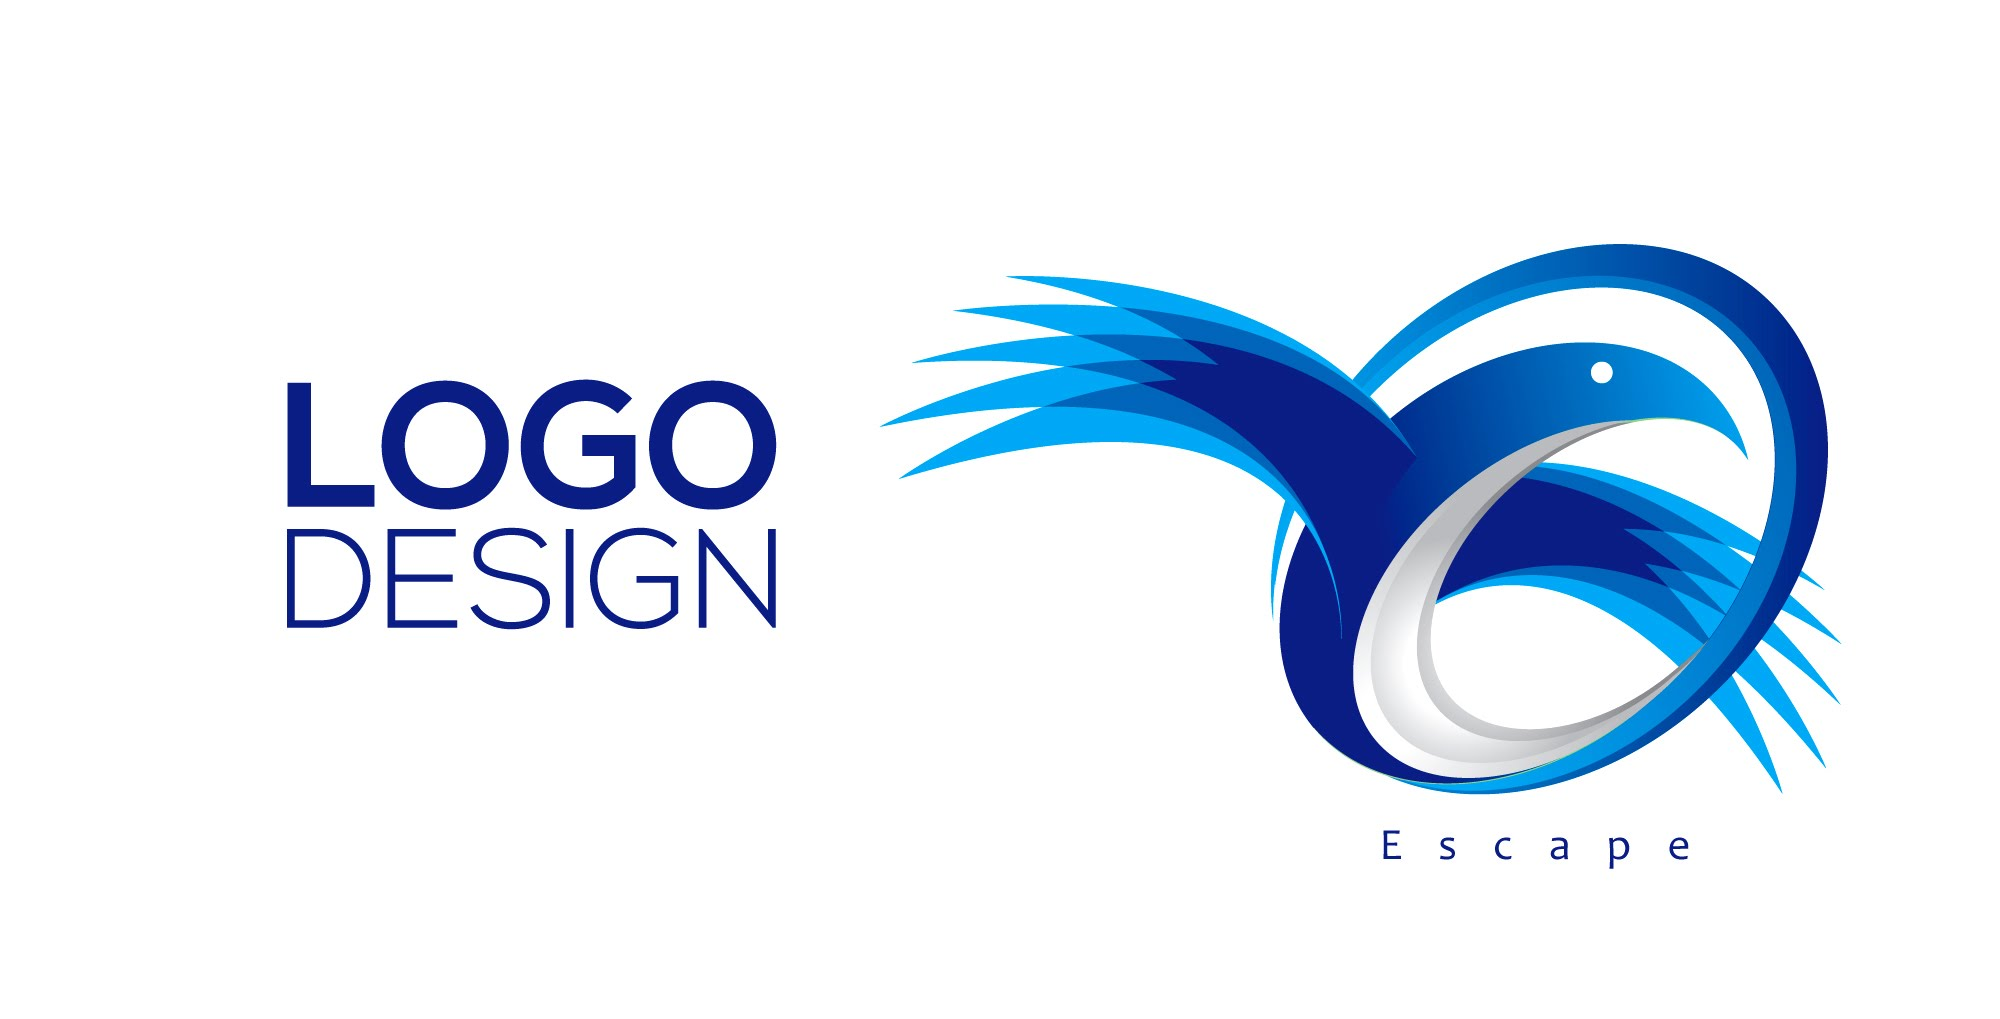 Hire LOGO designer and get cheap logo design from